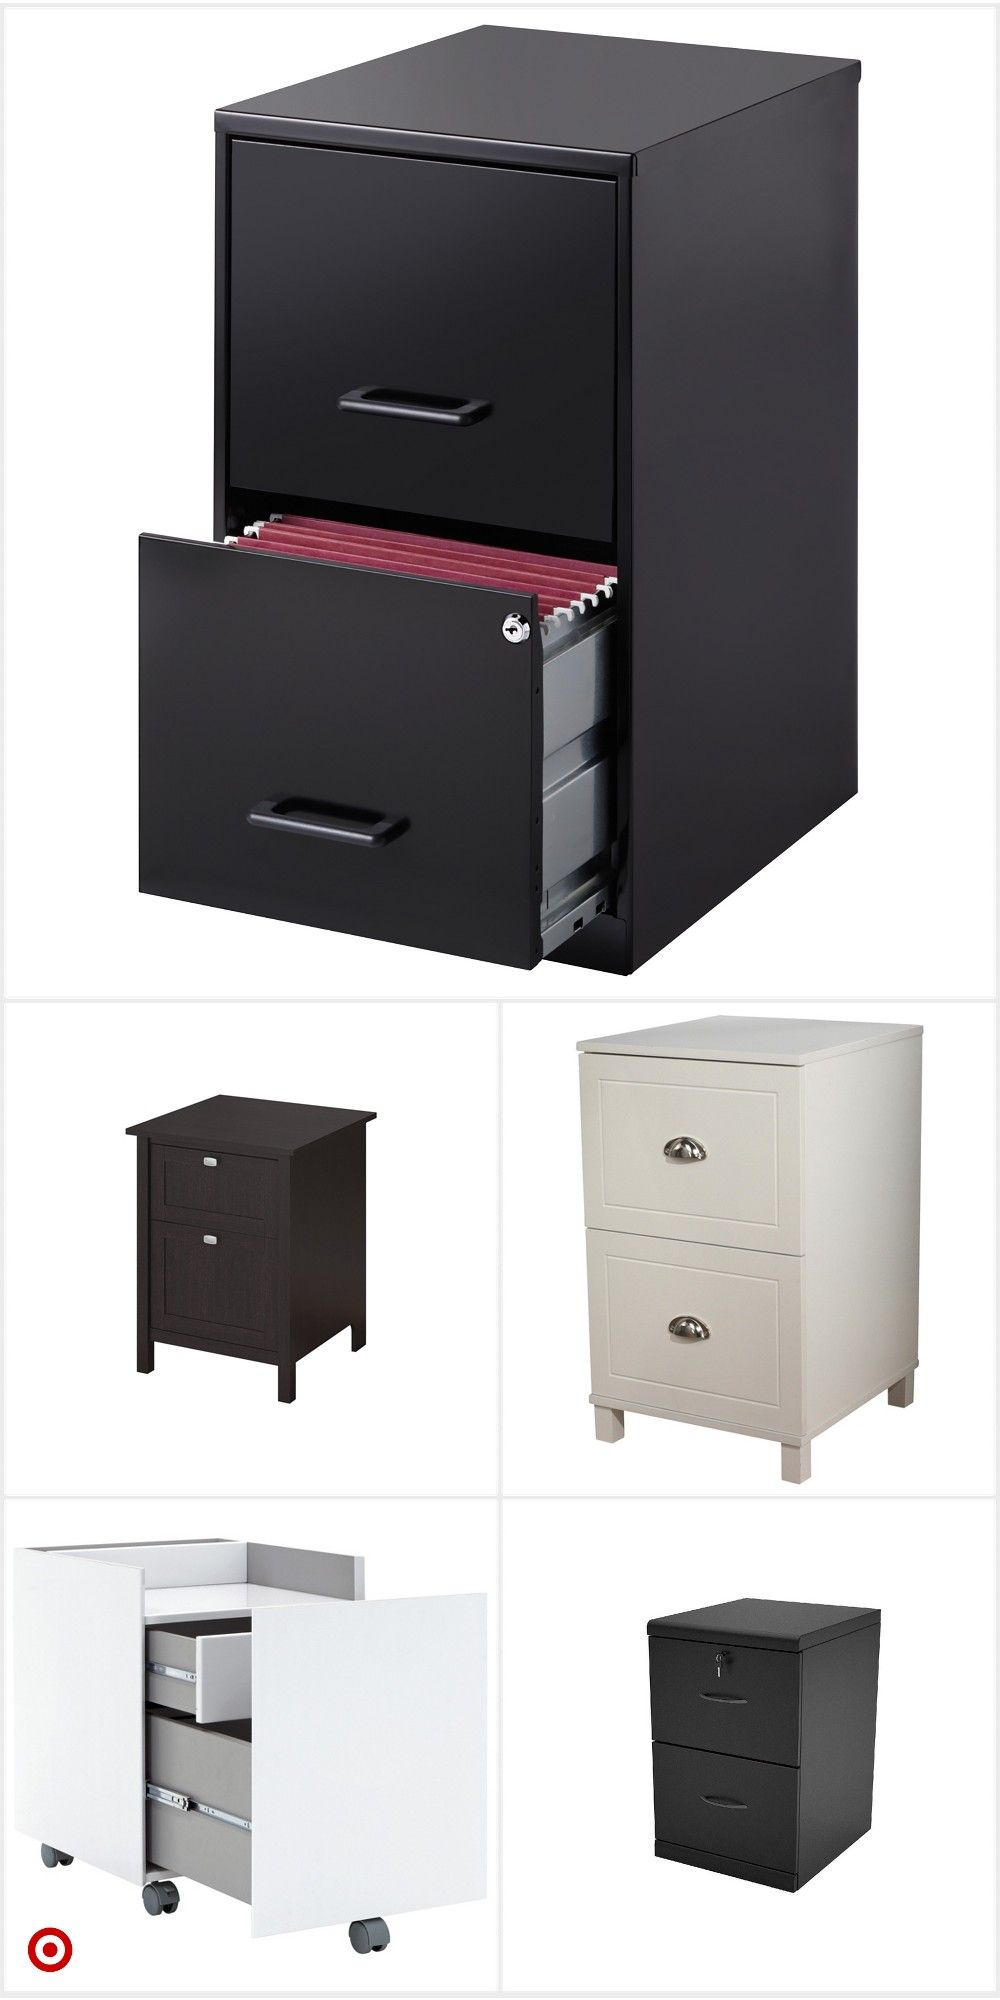 Shop Target For Vertical Filing Cabinet You Will Love At Great Low Prices Free Shipping On Orders Of 35 Or Free In 2020 Filing Cabinet Diy File Cabinet Diy Cabinets